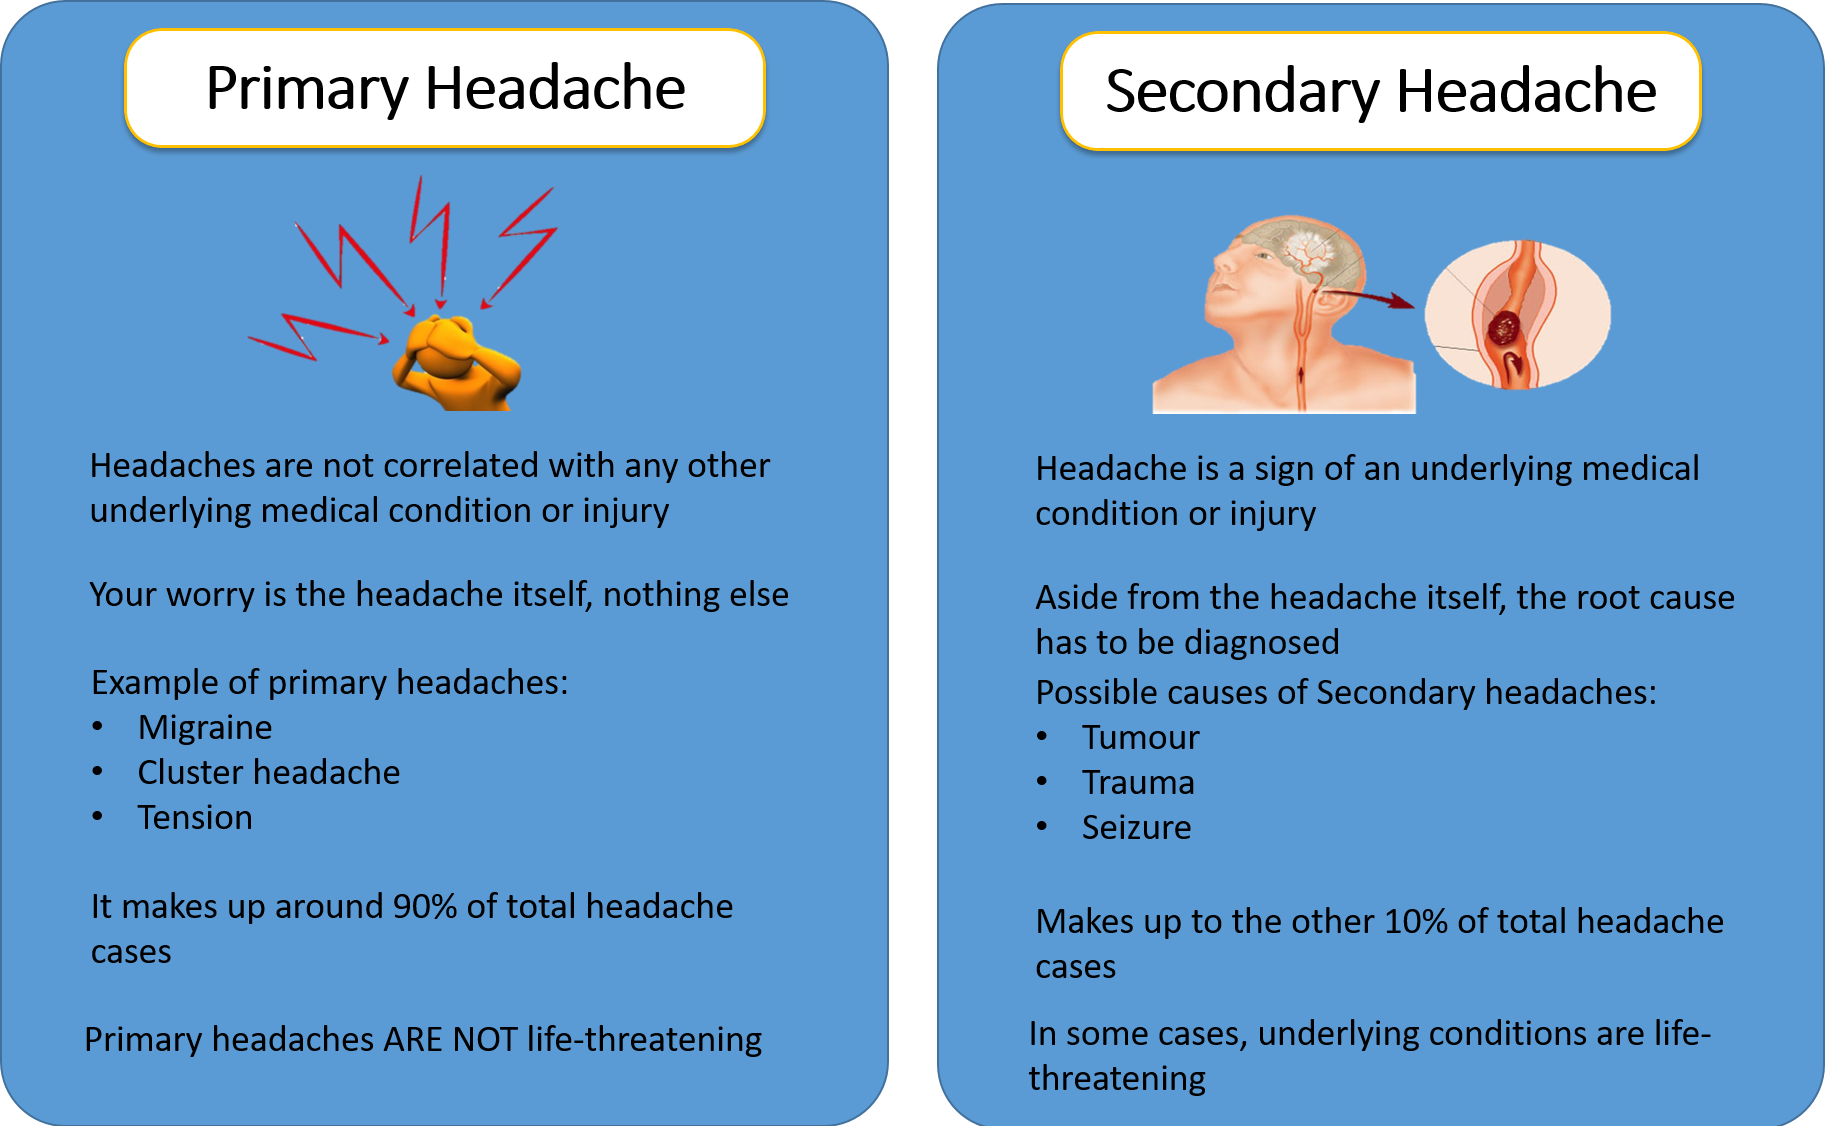 secondary headache